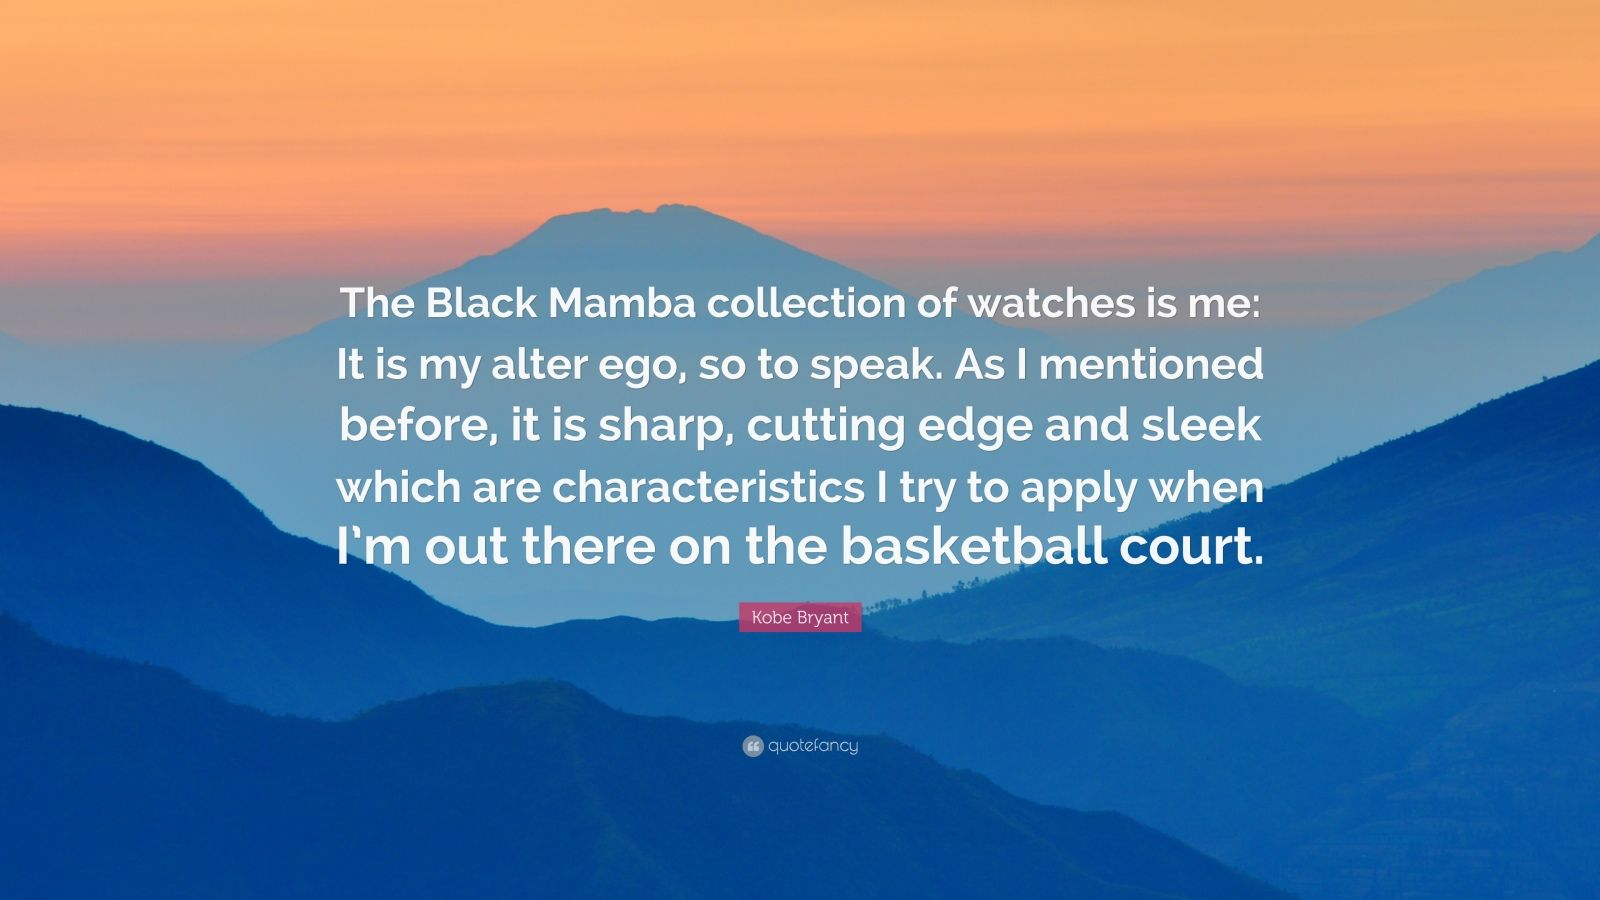 """Kobe Bryant Quote: """"The Black Mamba collection of watches is me: It is my alter ego, so to speak. As I mentioned before, it is sharp, cutting edge and sleek which are characteristics I try to apply when I'm out there on the basketball court."""""""